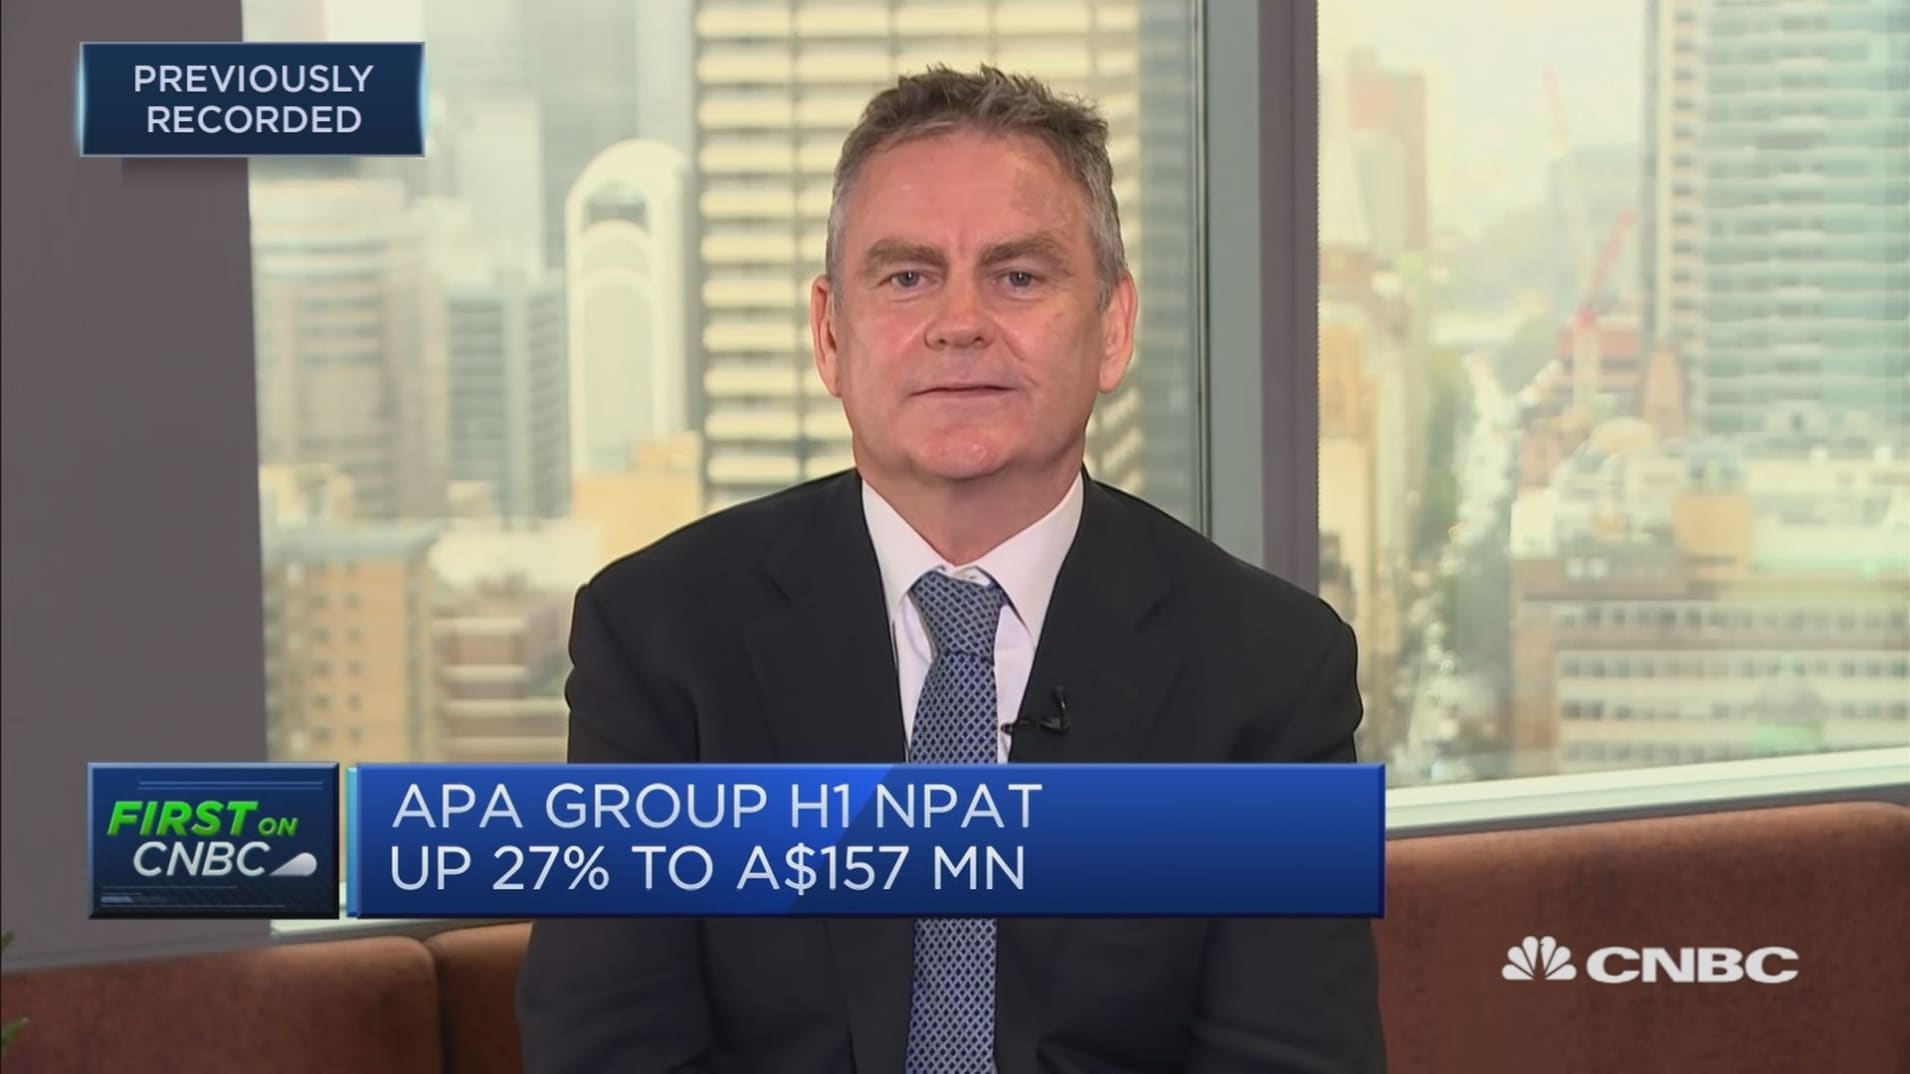 APA Group chief: It's onwards and upwards for us